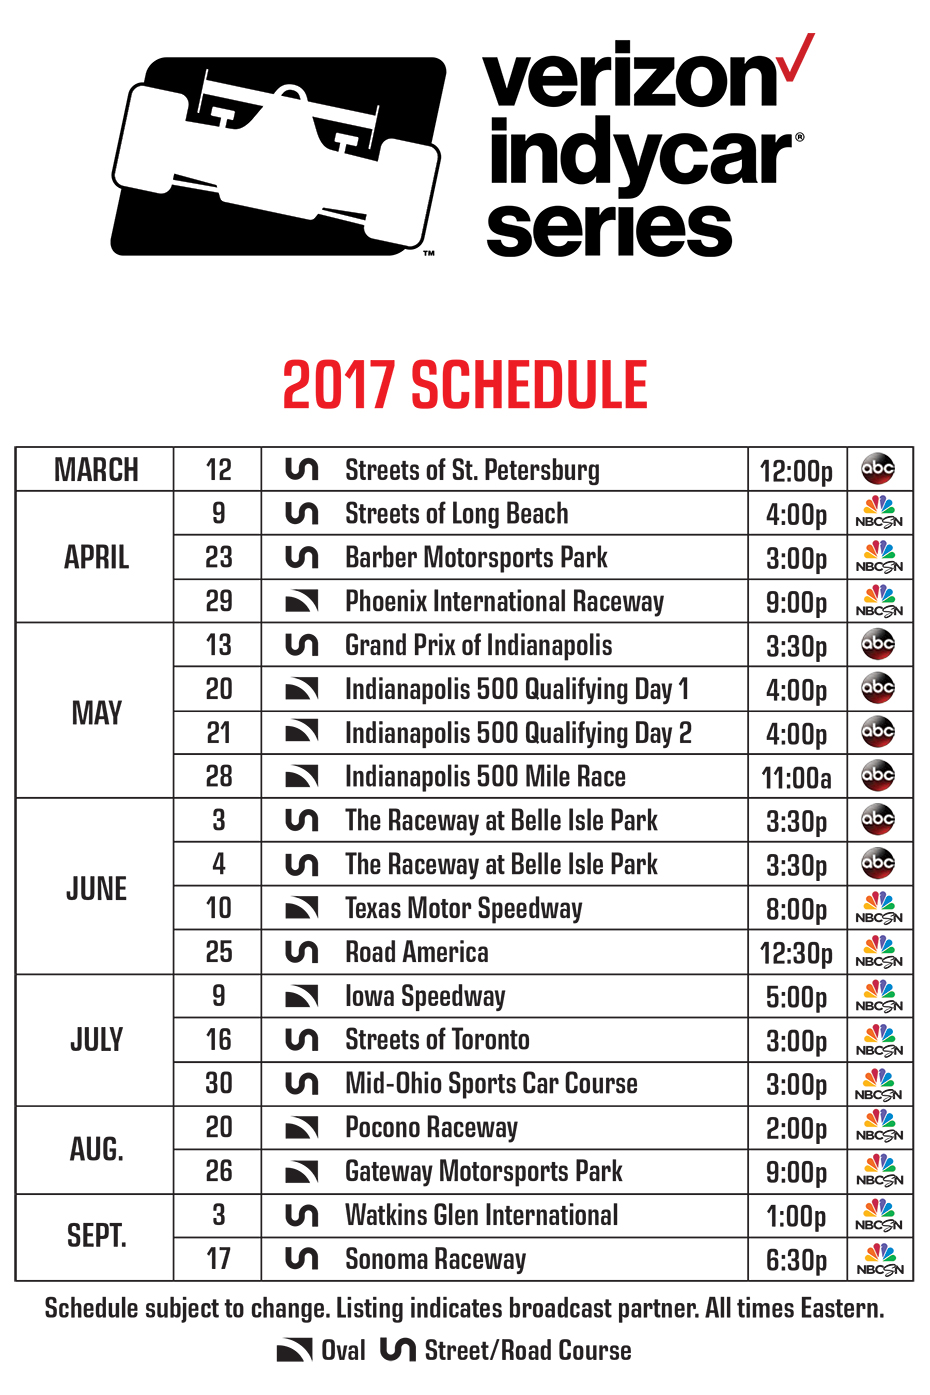 2017 Verizon IndyCar Series Television Broadcast Schedule